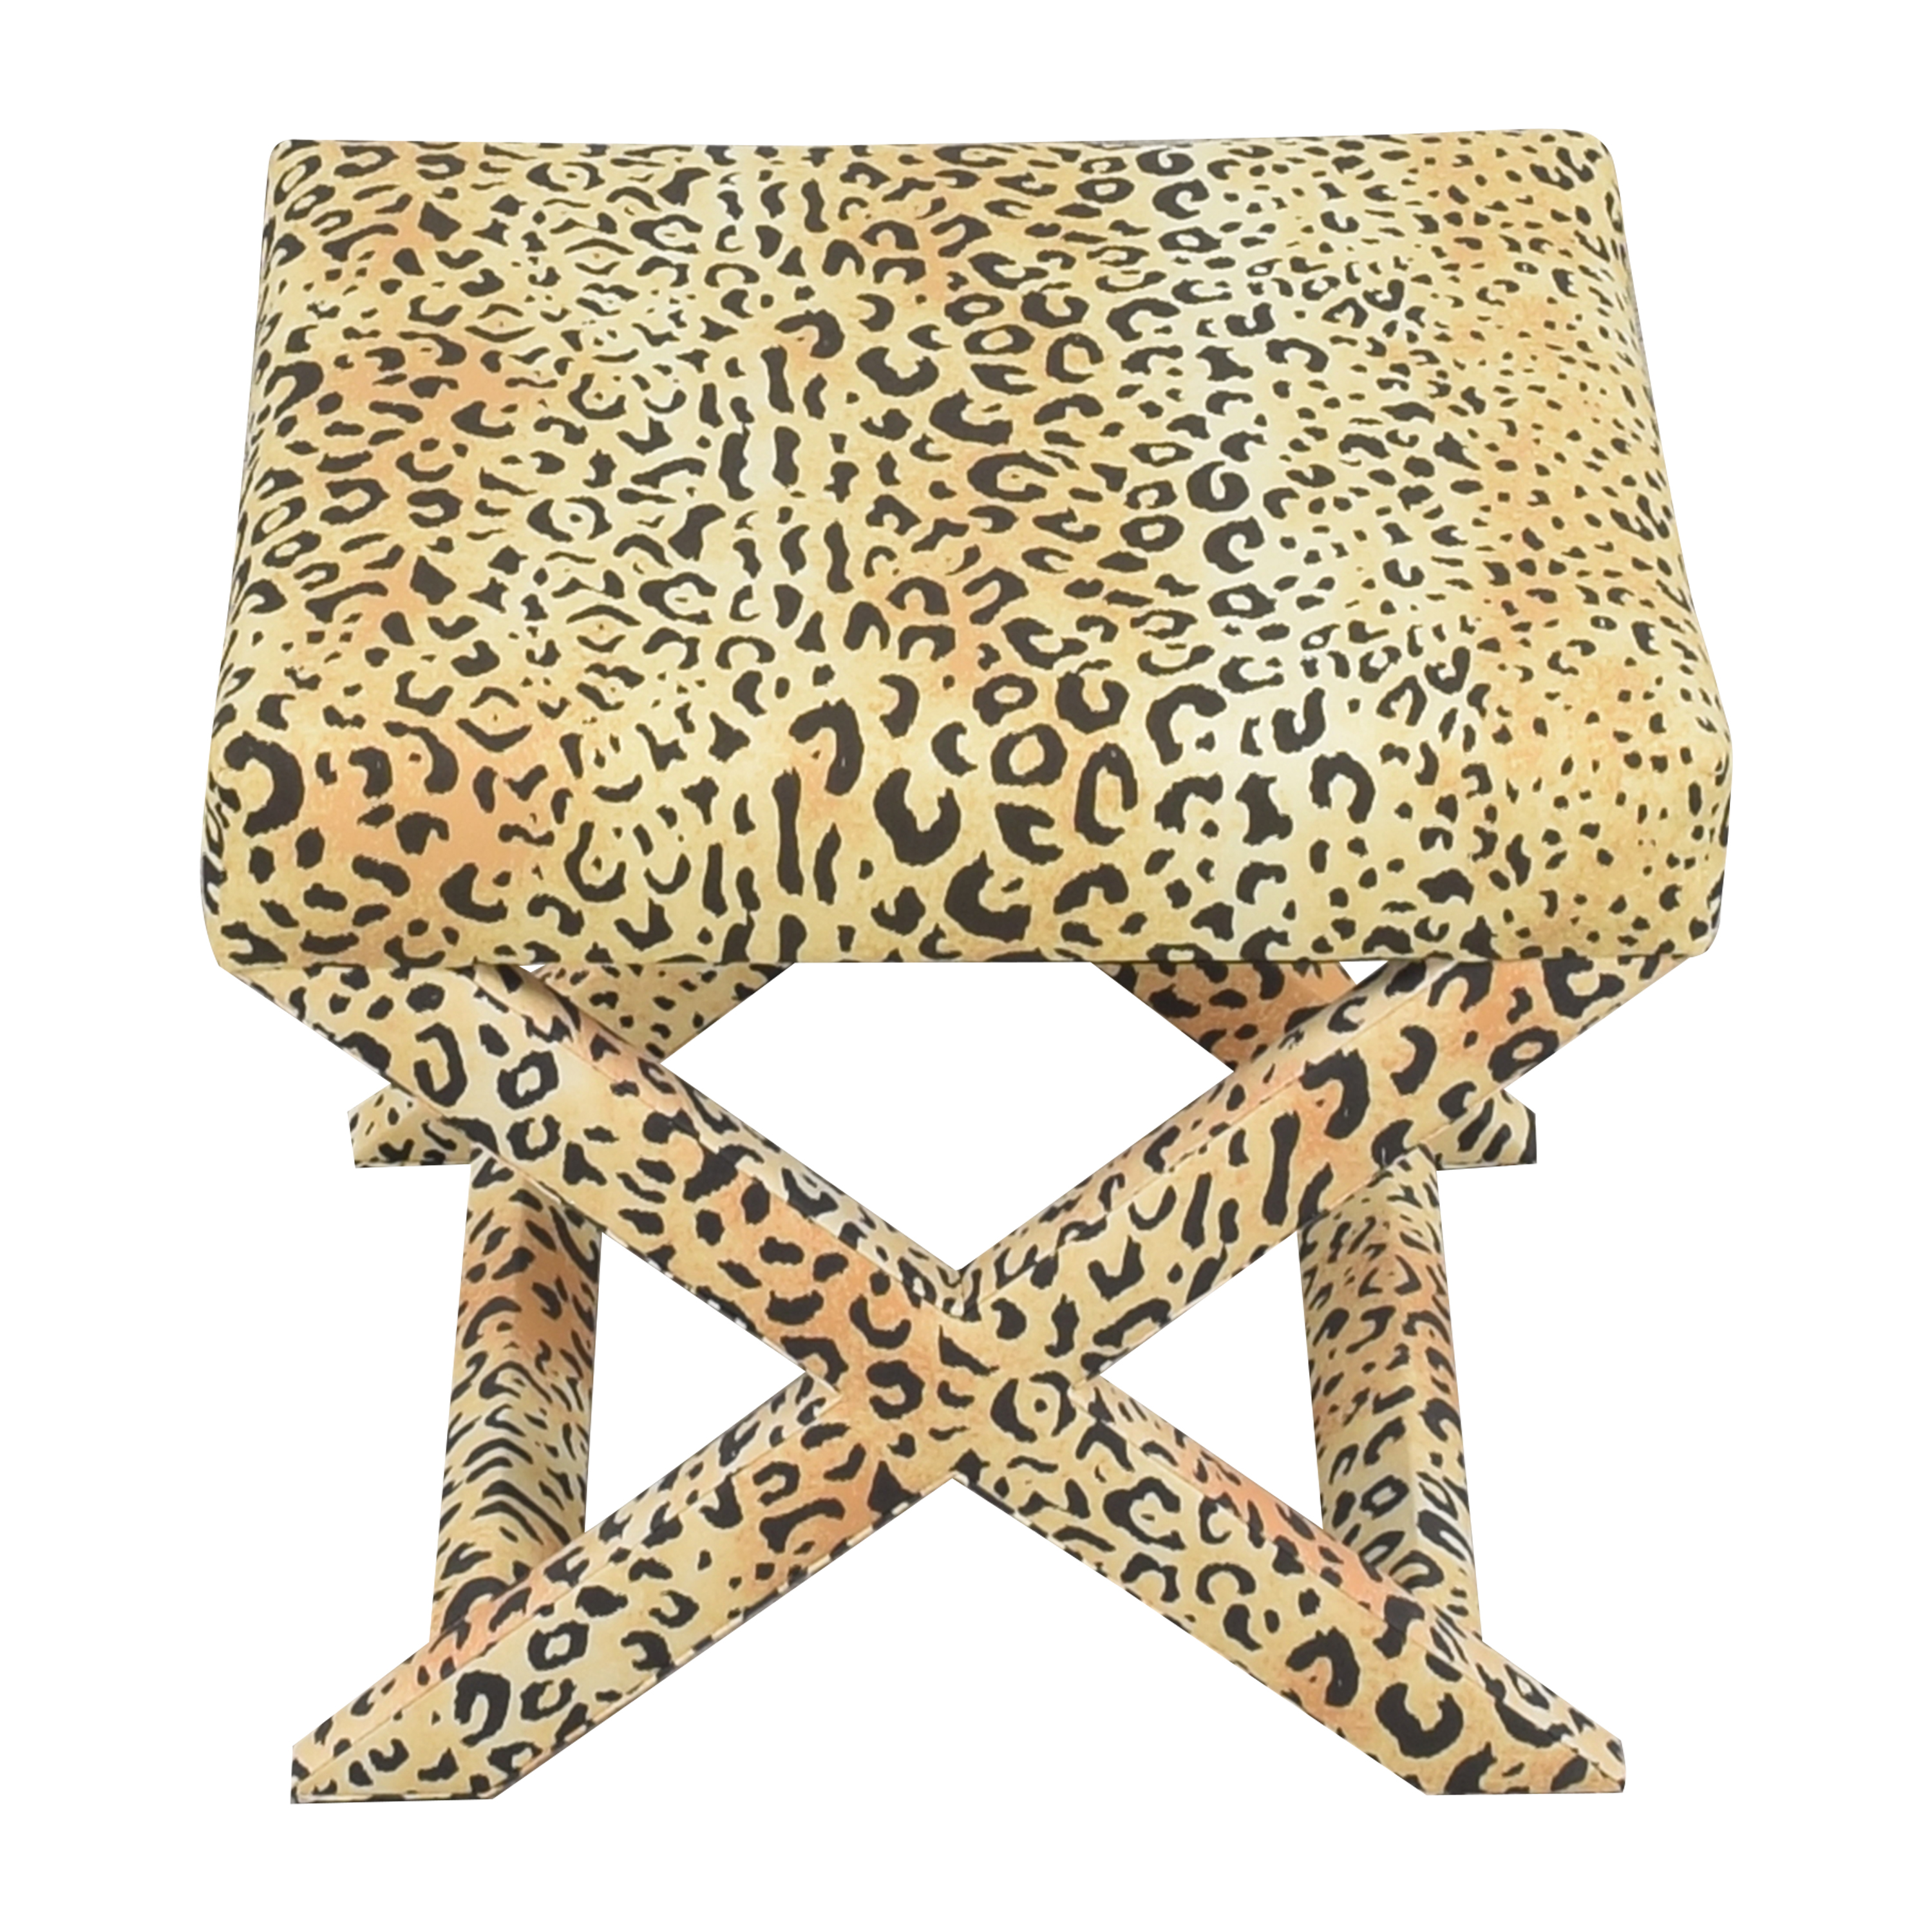 buy The Inside Leopard X Bench The Inside Chairs